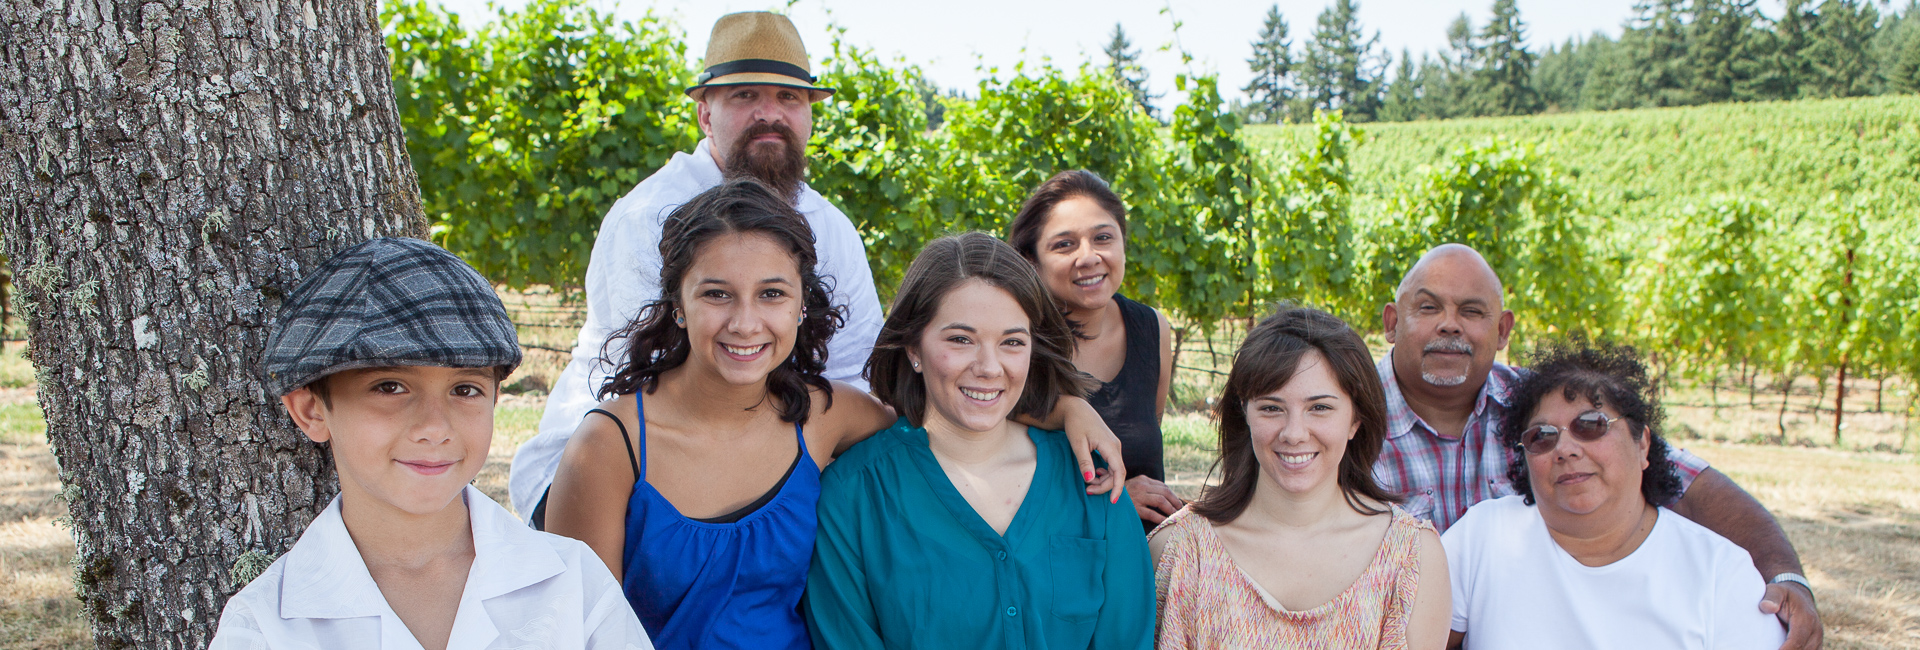 Family portrait at Zenith Vineyard in Zenith Oregon